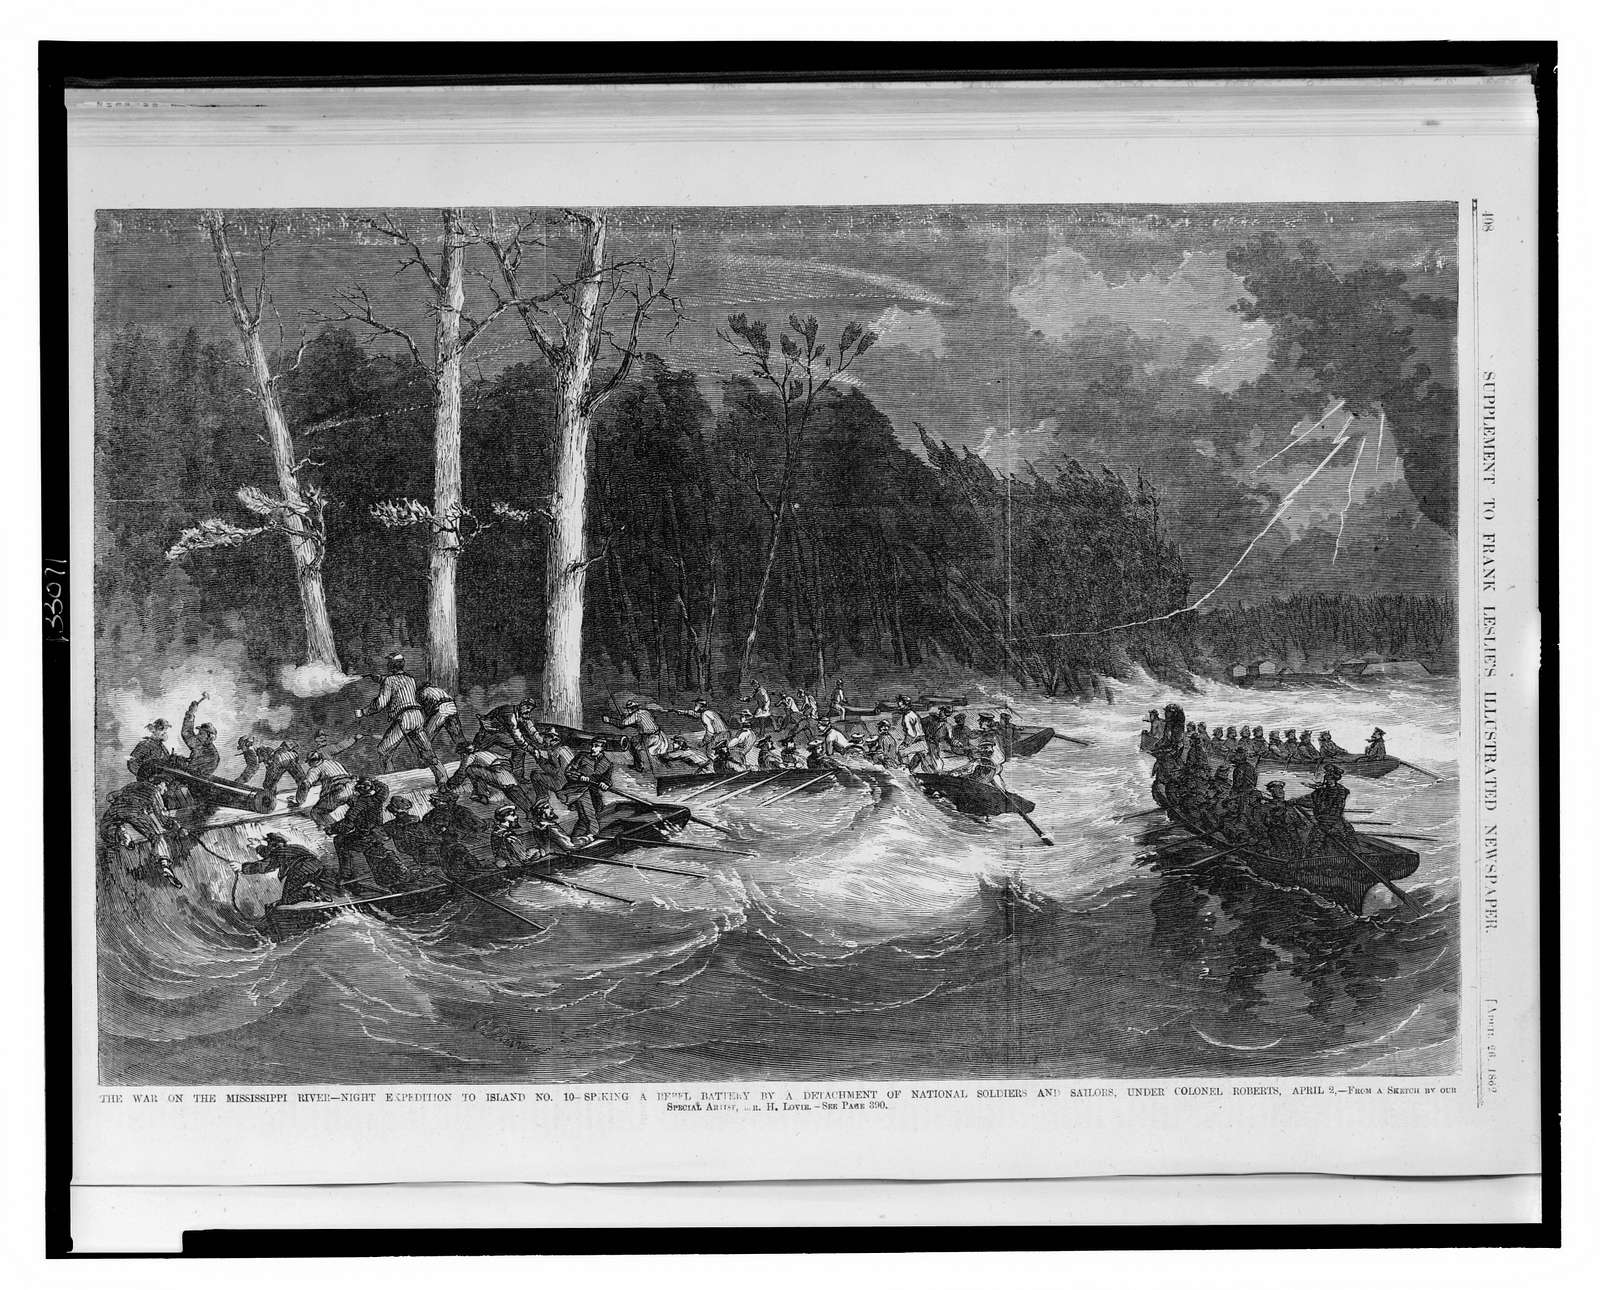 The war on the Mississippi River - night expedition to island no. 10 ... / from a sketch by our special artist, Mr. H. Lovie.